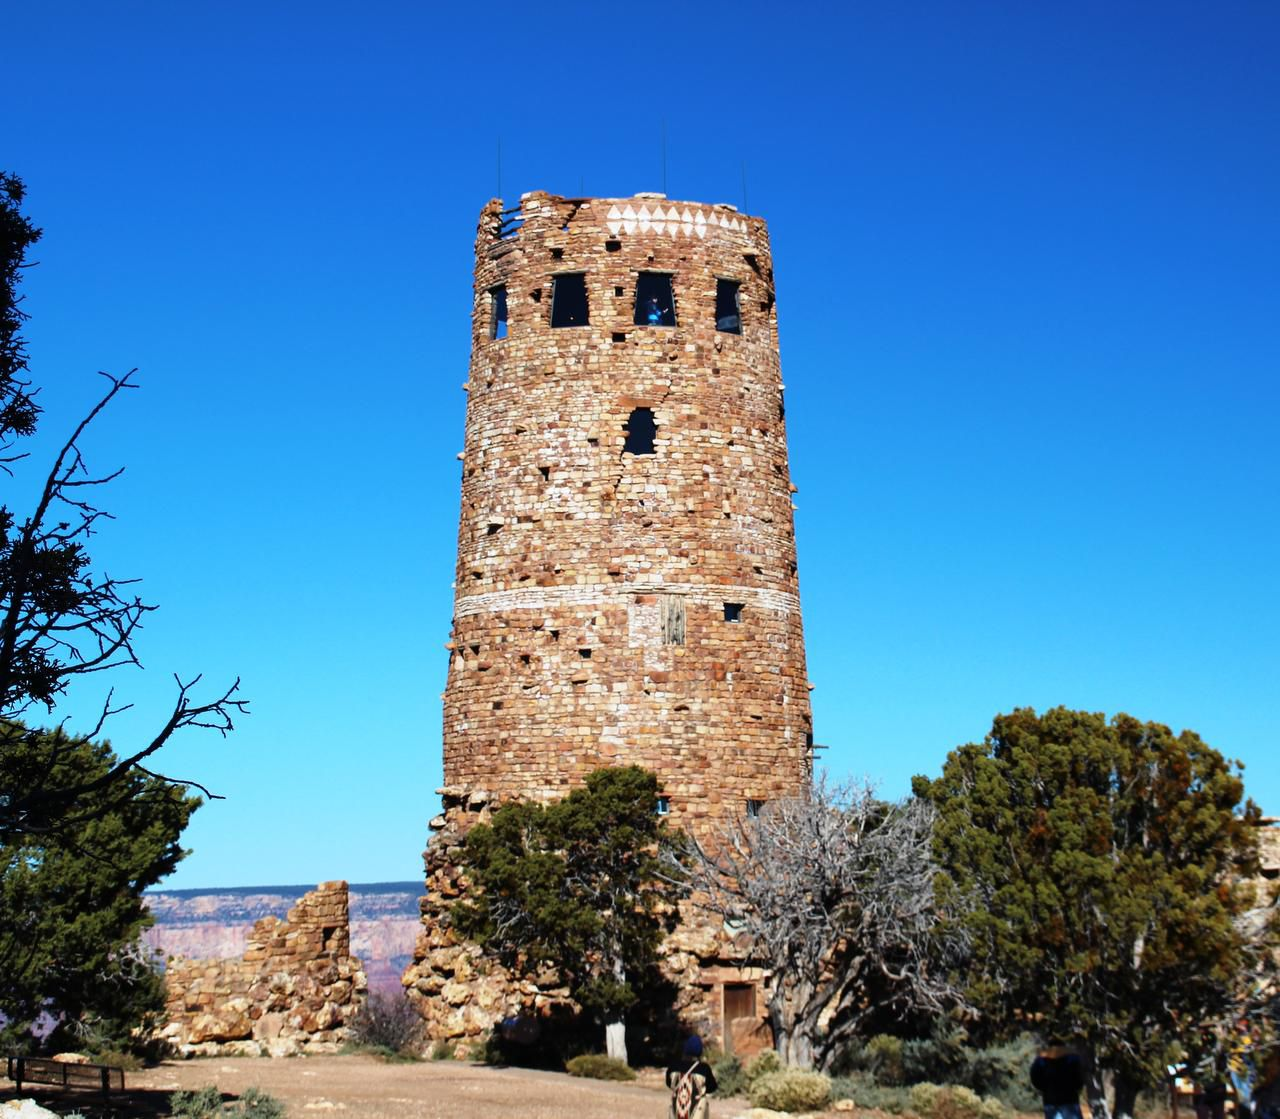 On a half-day  excursion to Desert View, climb the watchtower and peek out to see the view. The Tusayan Museum informs visitors about ancestral Puebloan people.